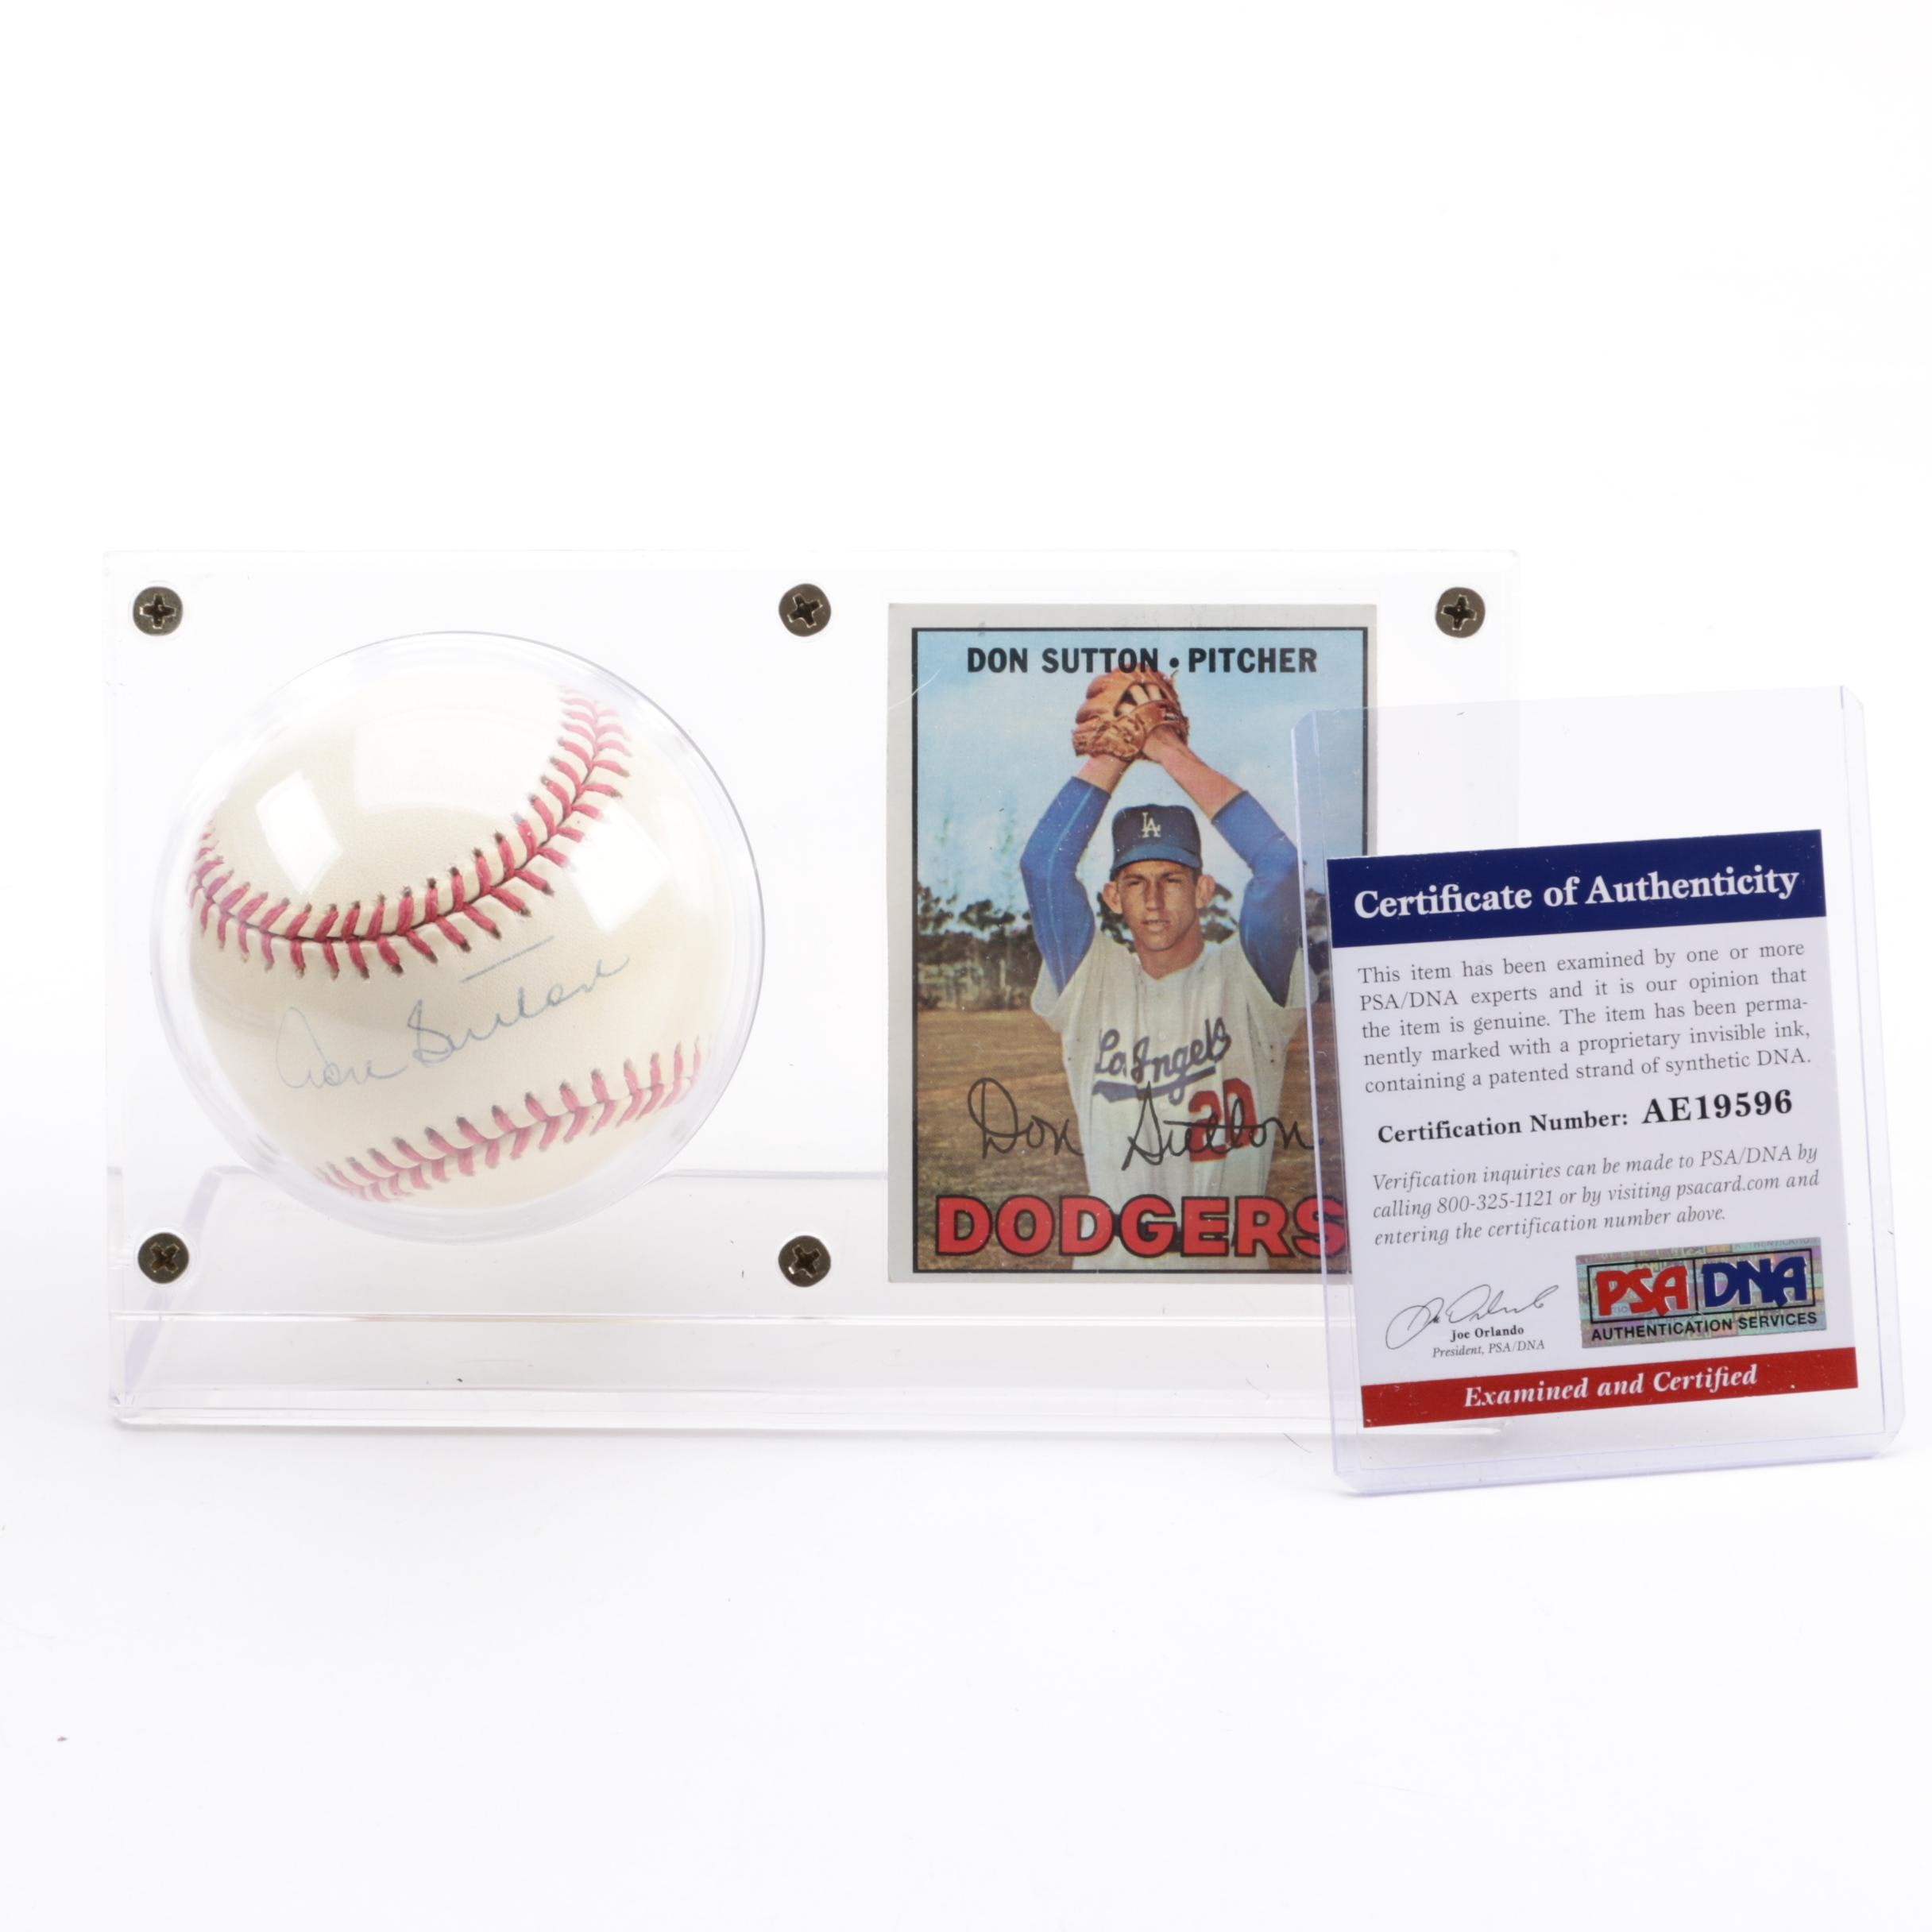 Don Sutton (HOF) Autographed Baseball with 1967 Topps #445 Card - PSA/DNA COA